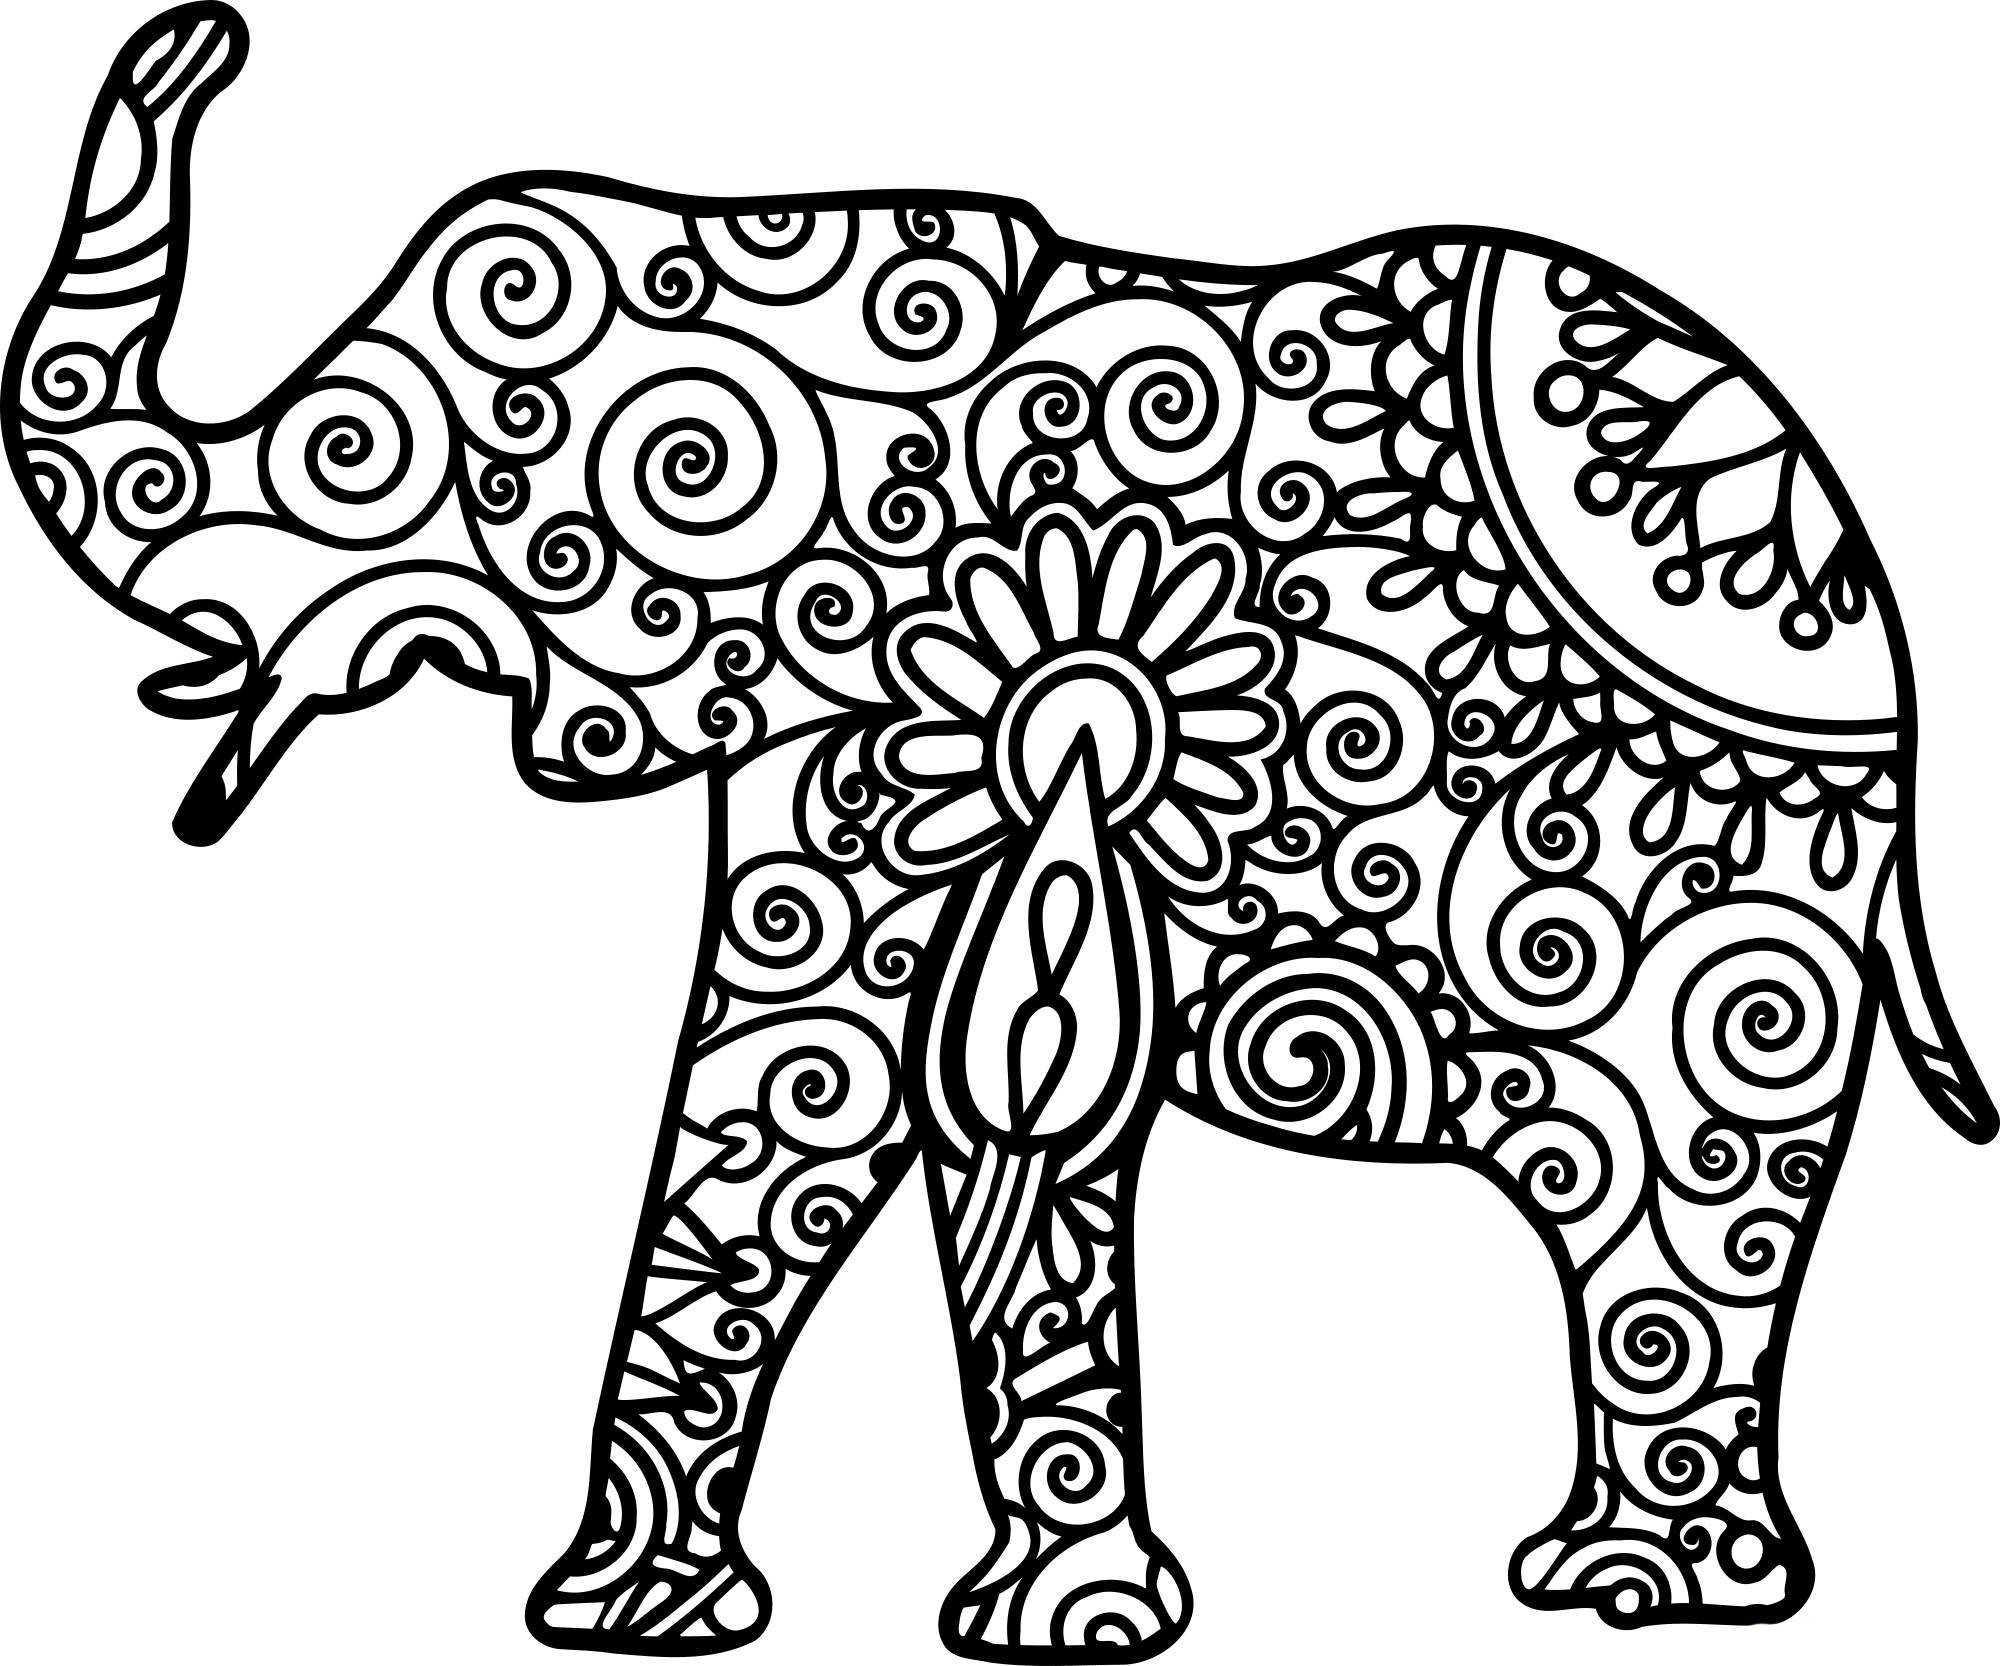 simple elephant coloring page free elephant coloring pages coloring elephant simple page